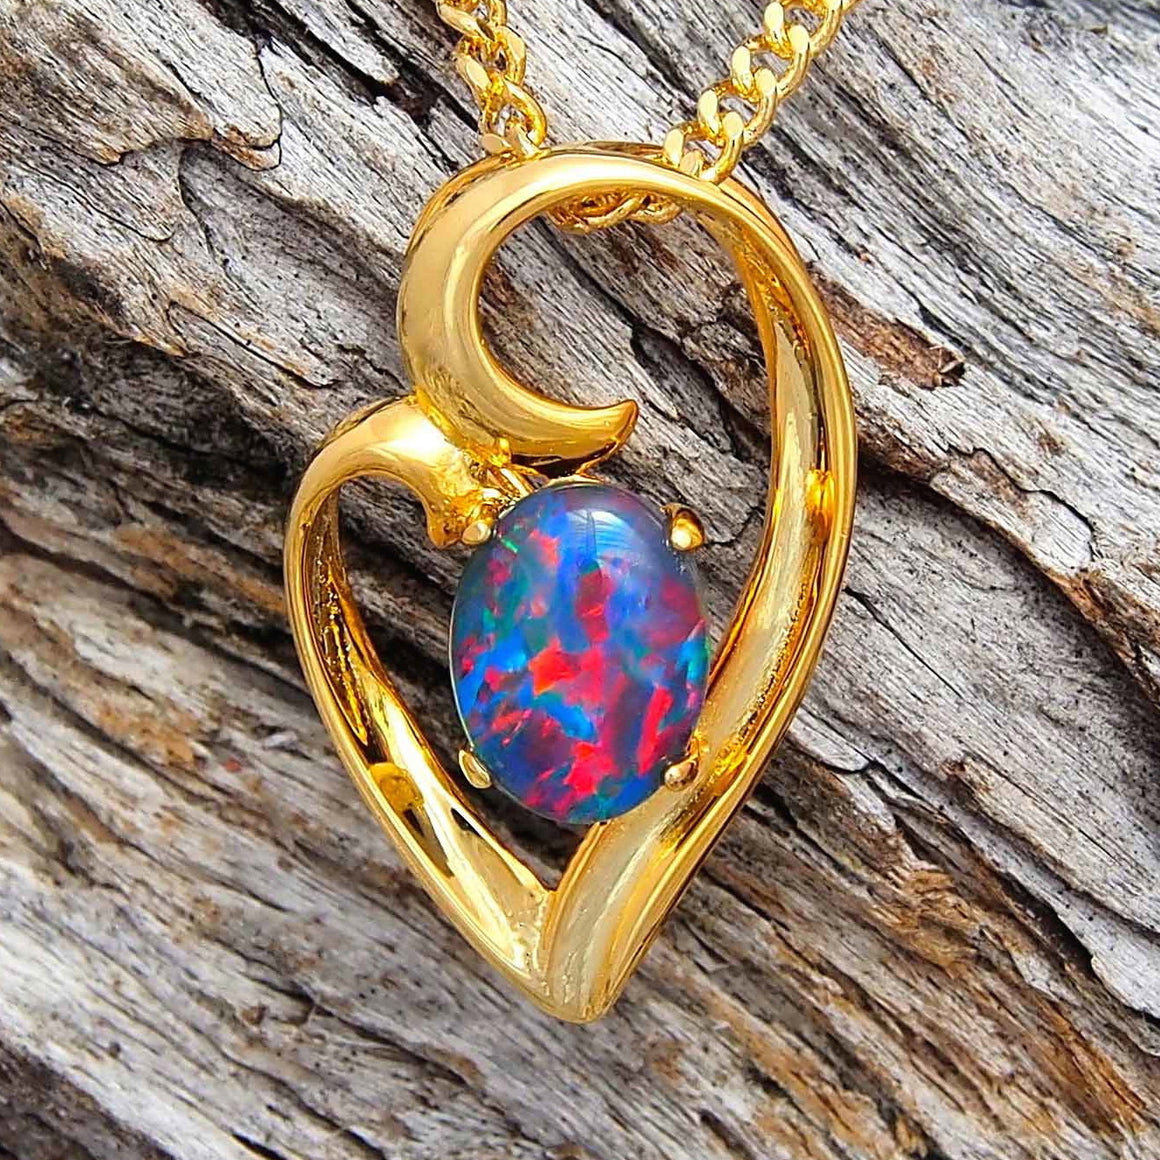 Elegant gold plated sterling silver decorative design slide necklace pendant claw set with a red, blue and green oval triplet opal